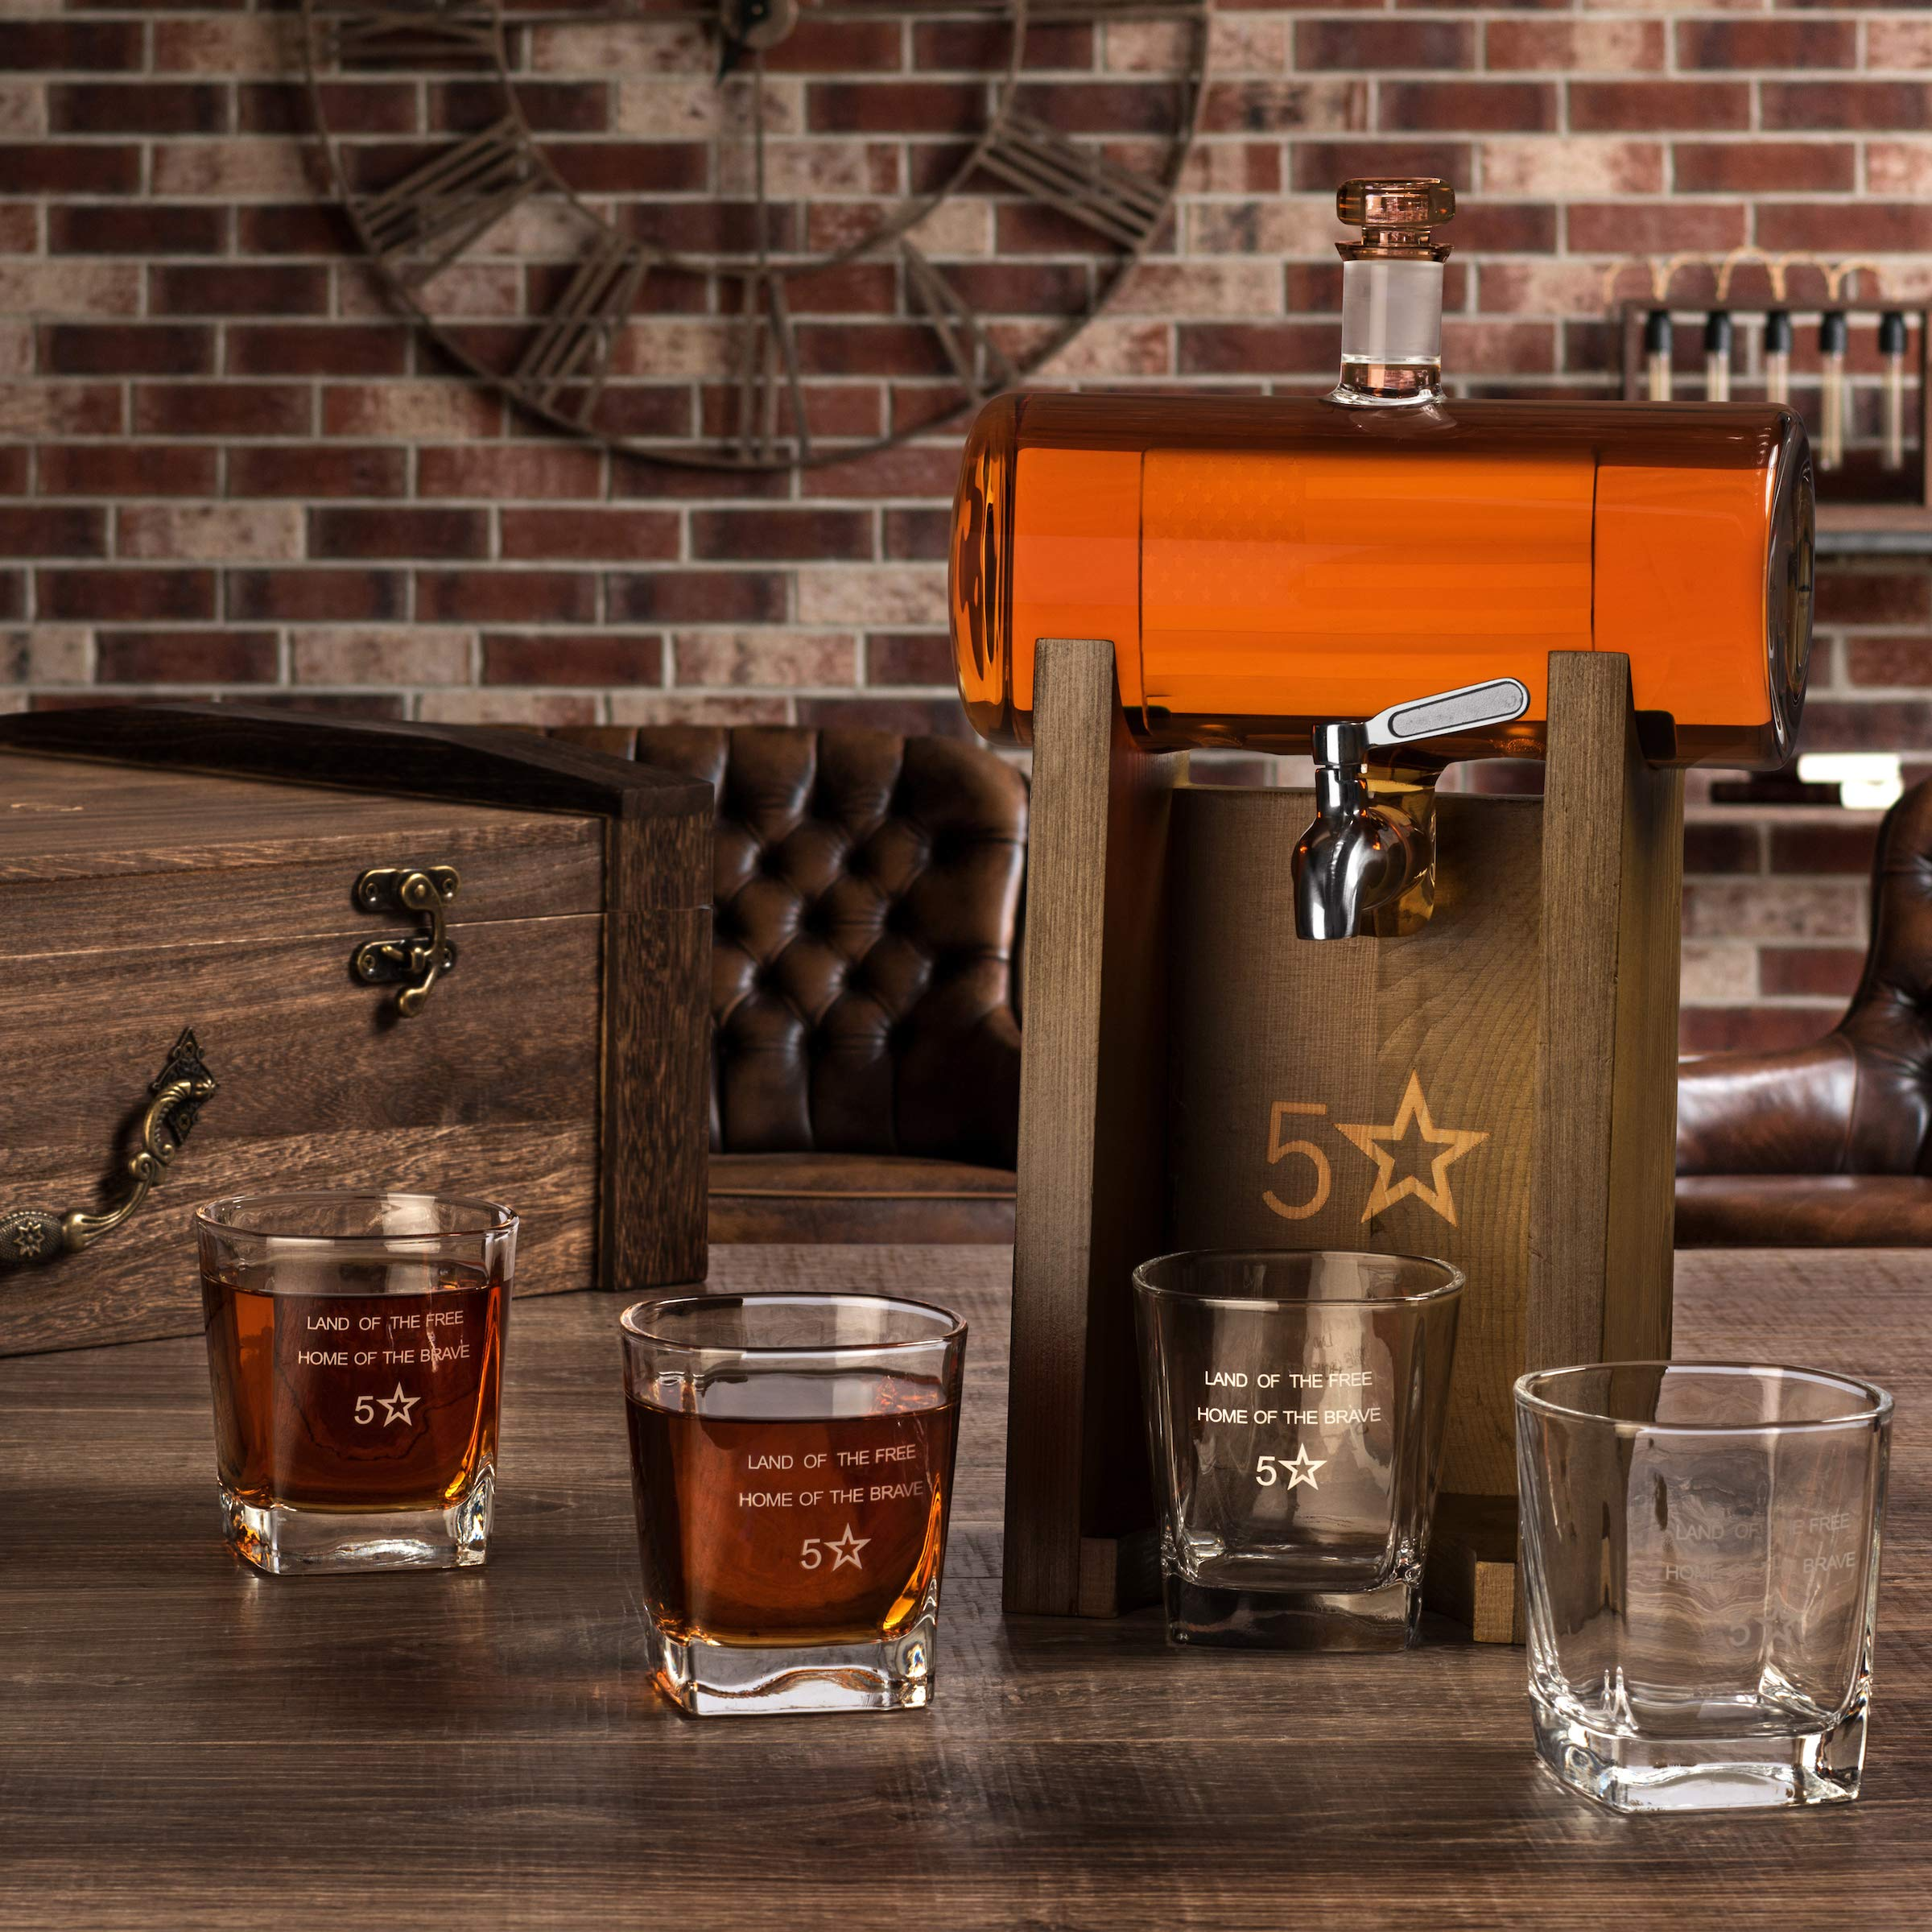 5 Star Decanters, 850mL Scotch Whiskey American Flag Decanter Set - Includes Liquor Dispenser, 4 Etched Whiskey Glasses, Wooden Stand, Stainless Steel Ice Cubes, Ice Tongs, Drinking Memento Booklet by 5 Star Decanters (Image #7)